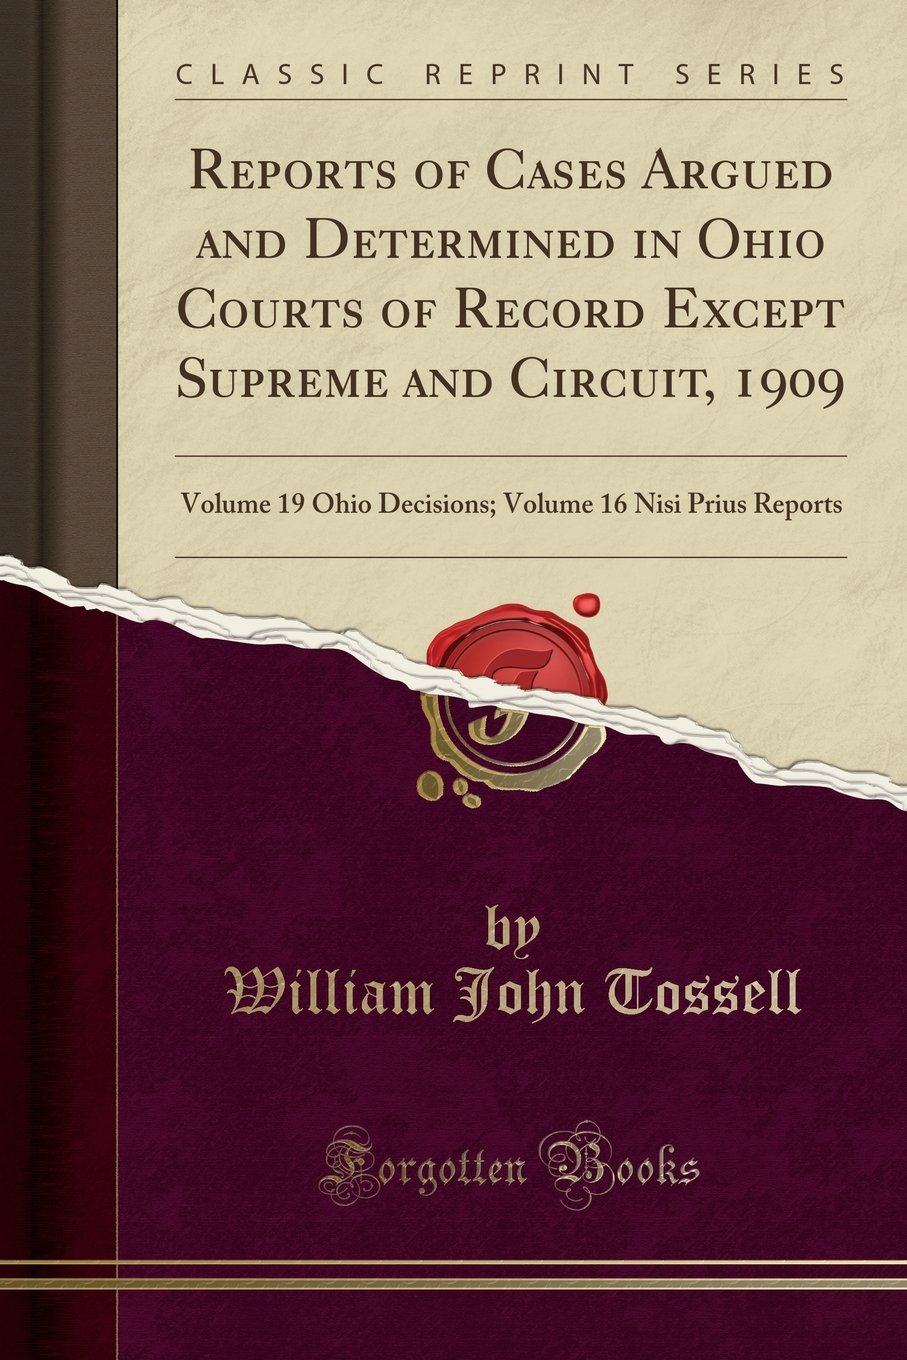 Read Online Reports of Cases Argued and Determined in Ohio Courts of Record Except Supreme and Circuit, 1909: Volume 19 Ohio Decisions; Volume 16 Nisi Prius Reports (Classic Reprint) PDF